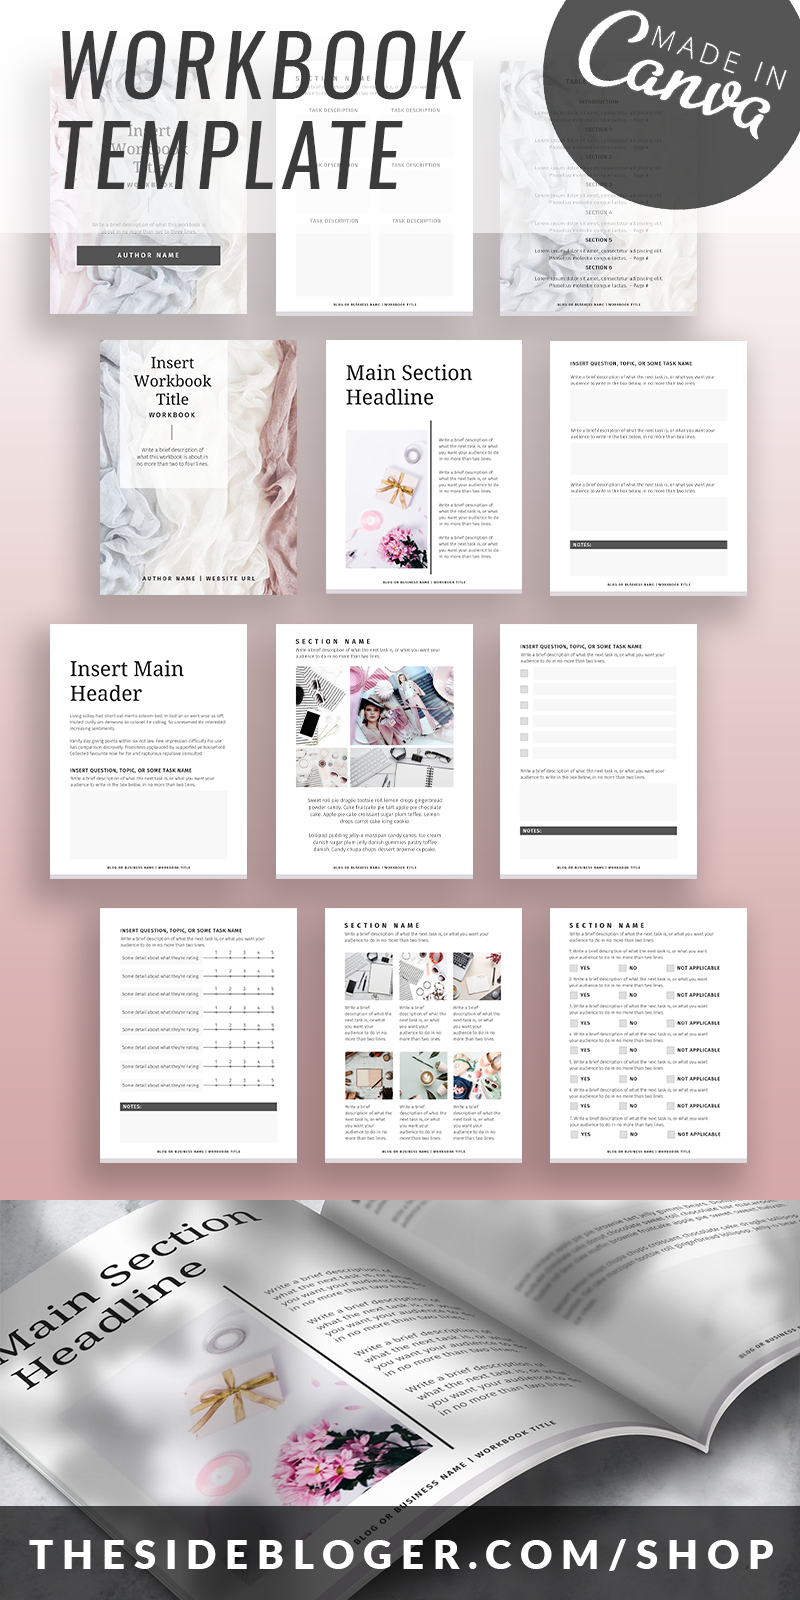 A Workbook template made with Canva, perfect for bloggers, influencers and educators.